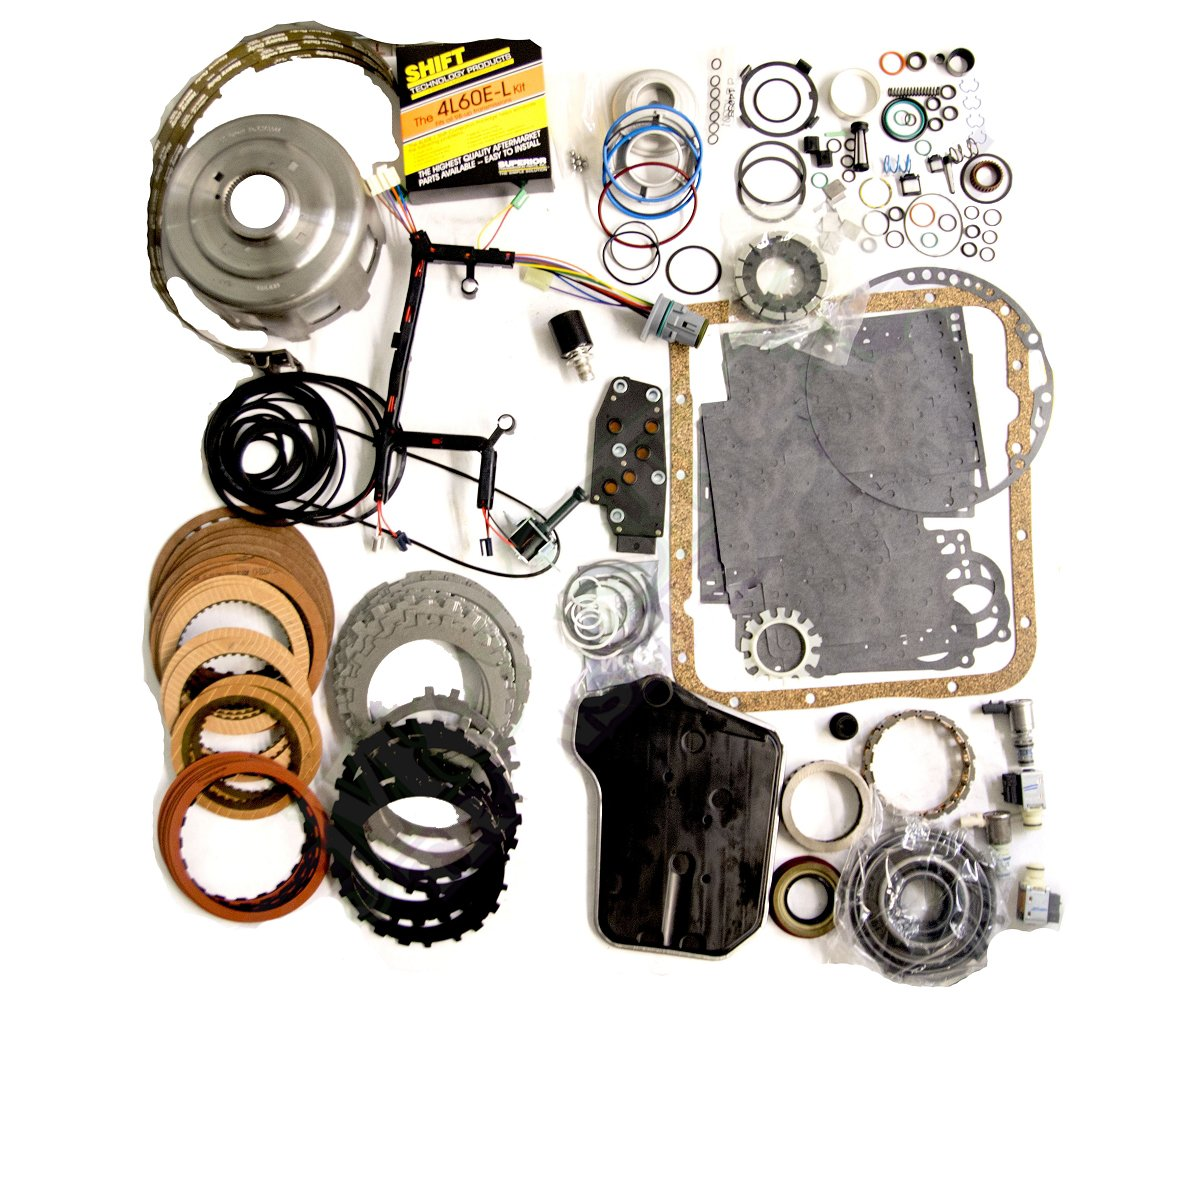 4L70E Transmission Rebuild Kit, Mega Monster-In-A-Box: 2006-09